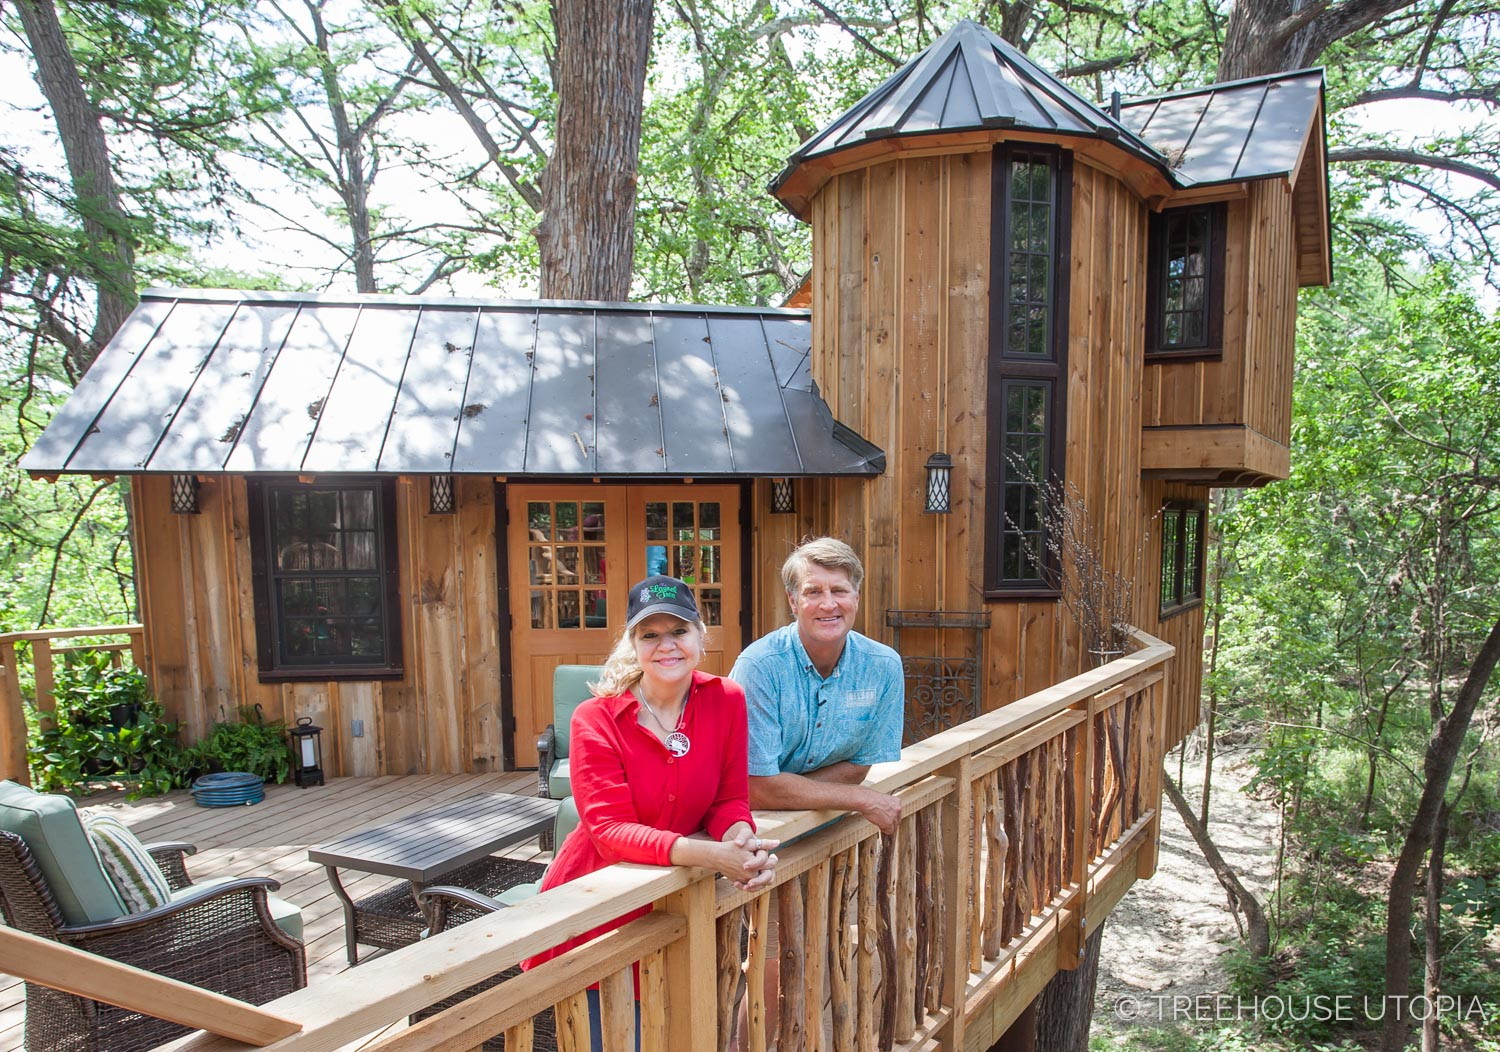 Laurel Waters and Pete Nelson at Treehouse Utopia